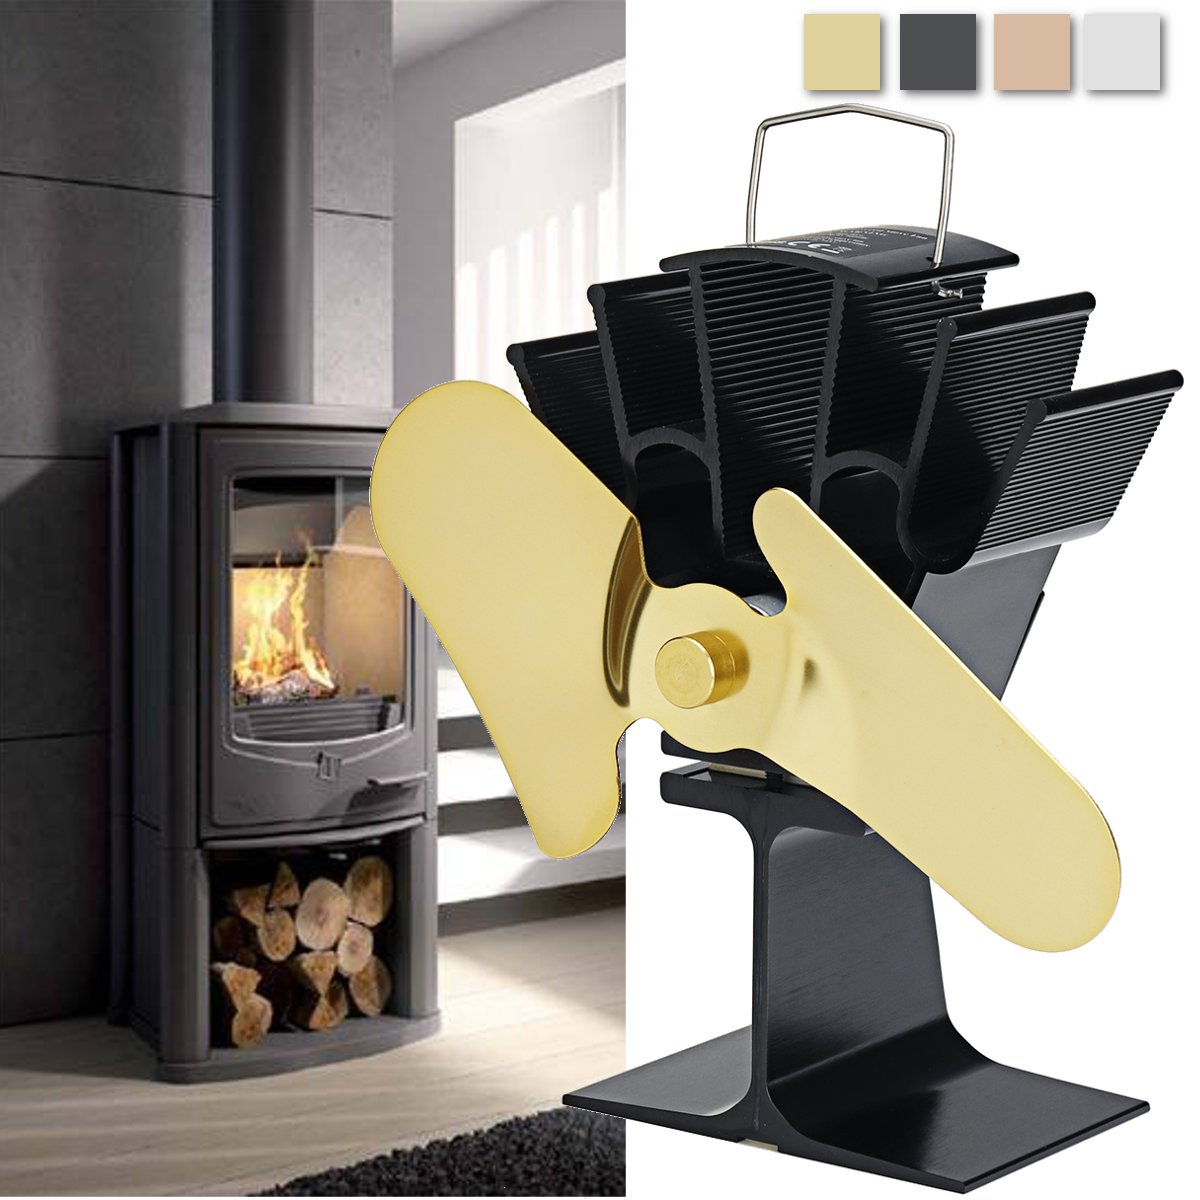 2 Blades Aluminum Heat Powered Stove Fan Wood Log Fireplace Fan Burner Thermal Powered Fireplace Parts Ecofan Heat Distribution